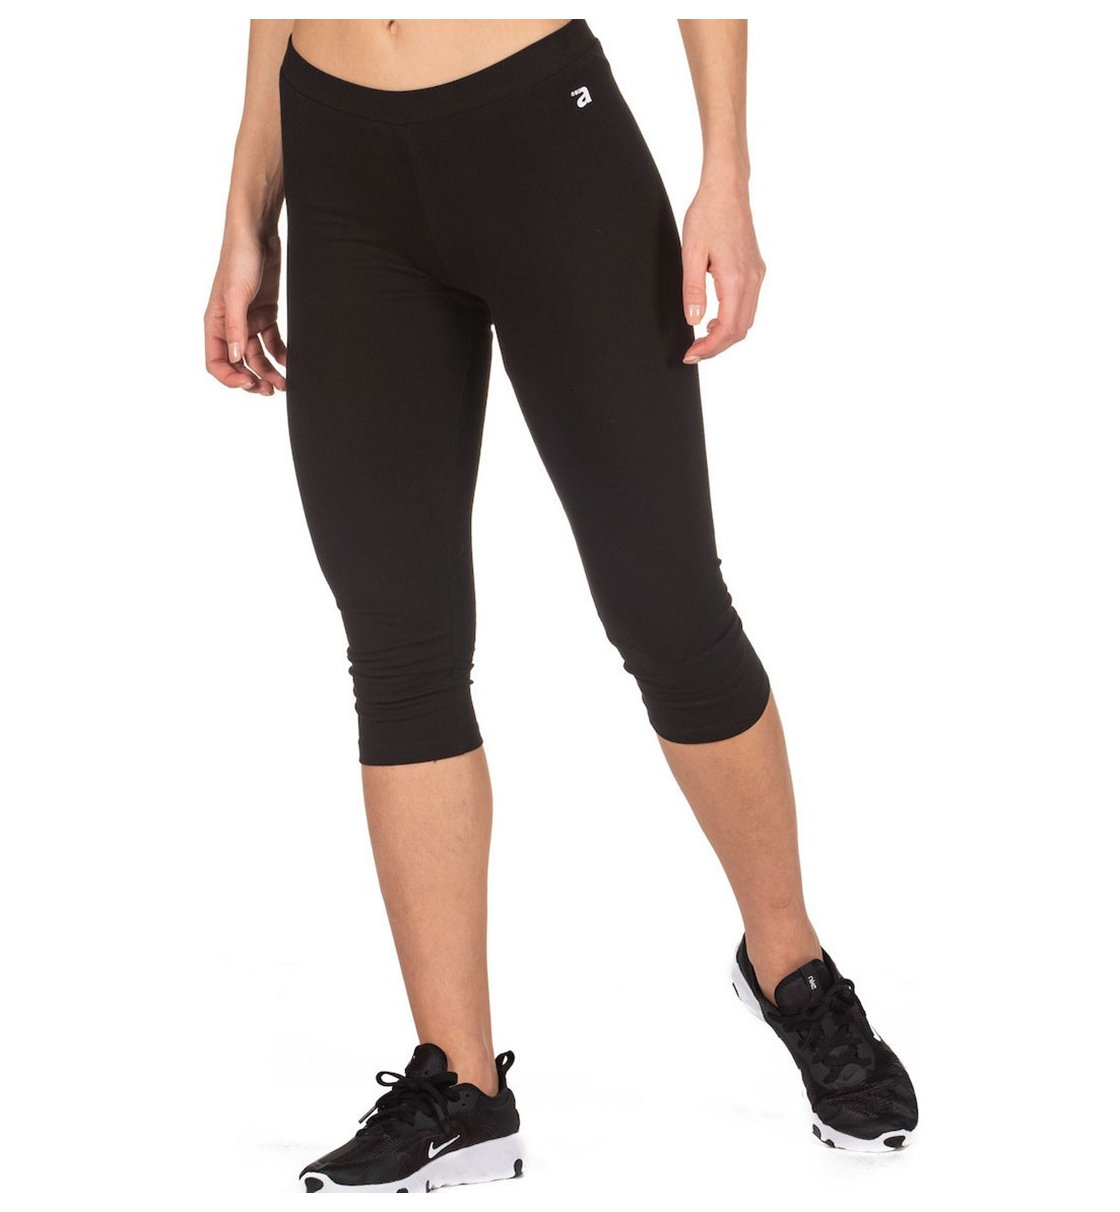 Body Action Ss20 Women 3/4 Tights